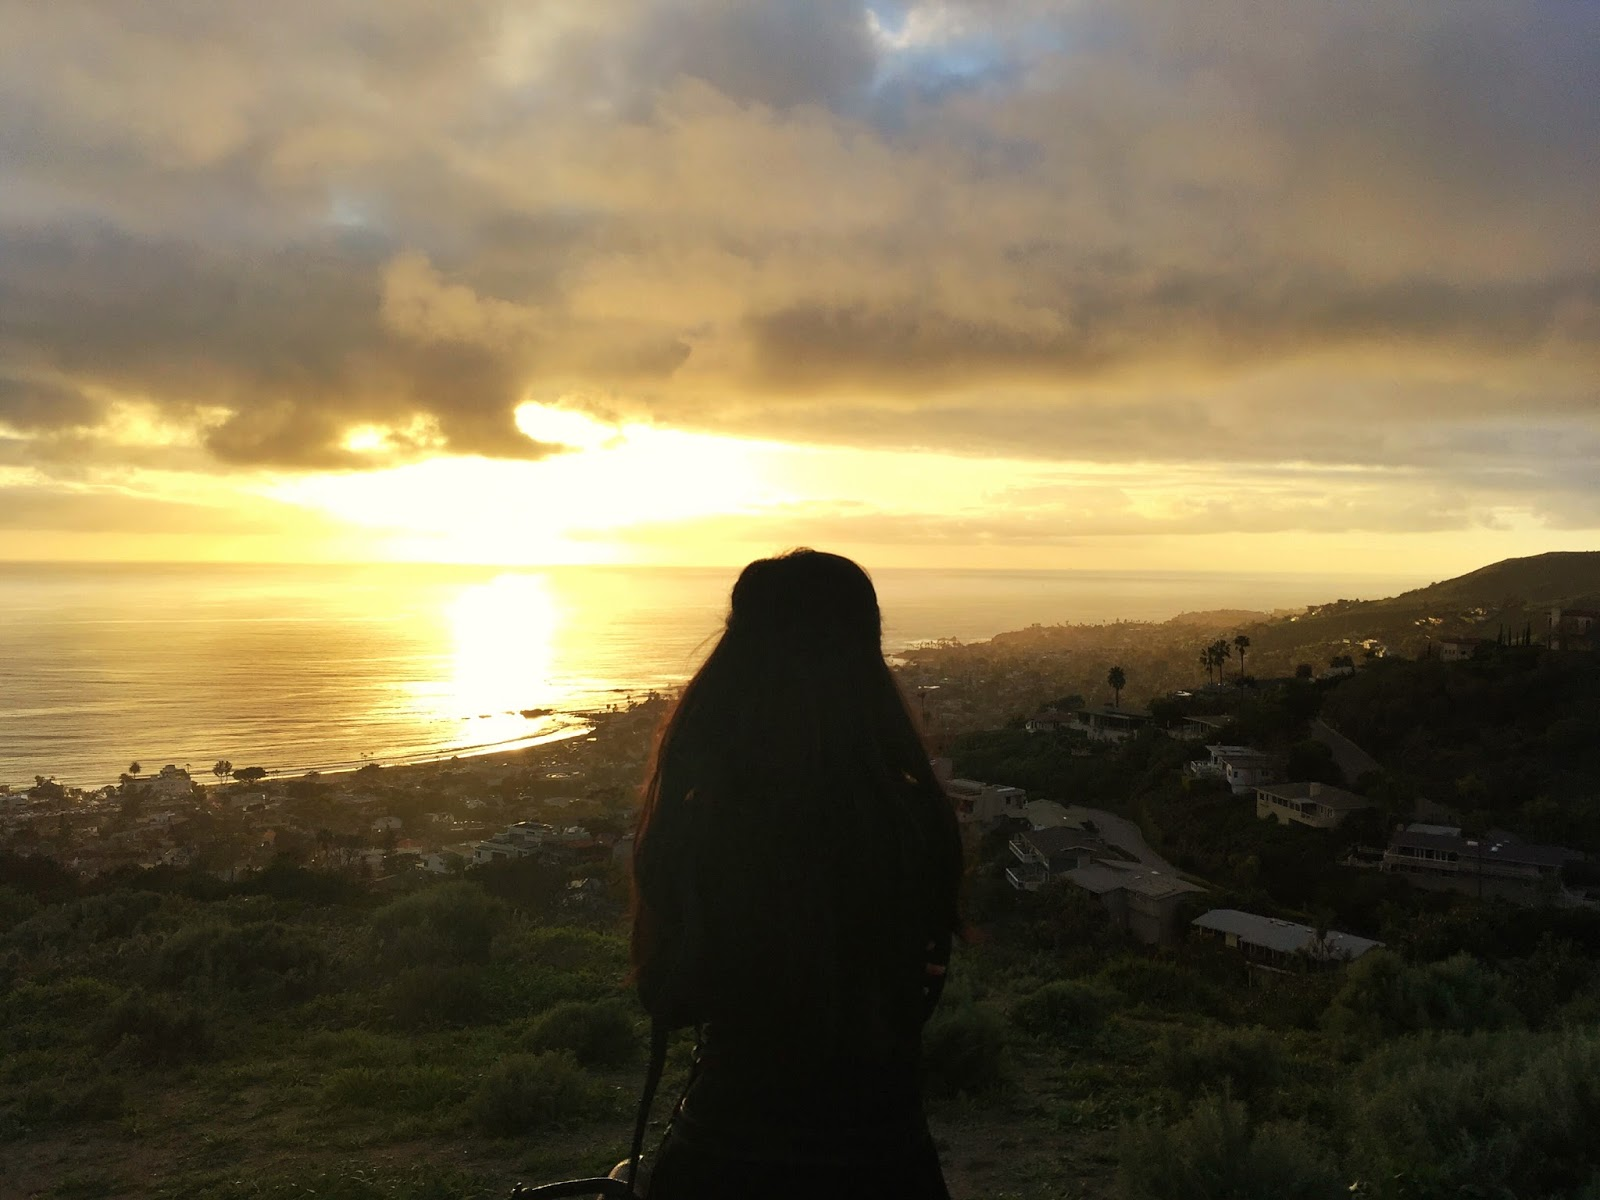 Adrienne Nguyen_Fashion Blogger_Sunset in Laguna Beach_From Above_Photographer_Ocean_California Beaches_Invictus